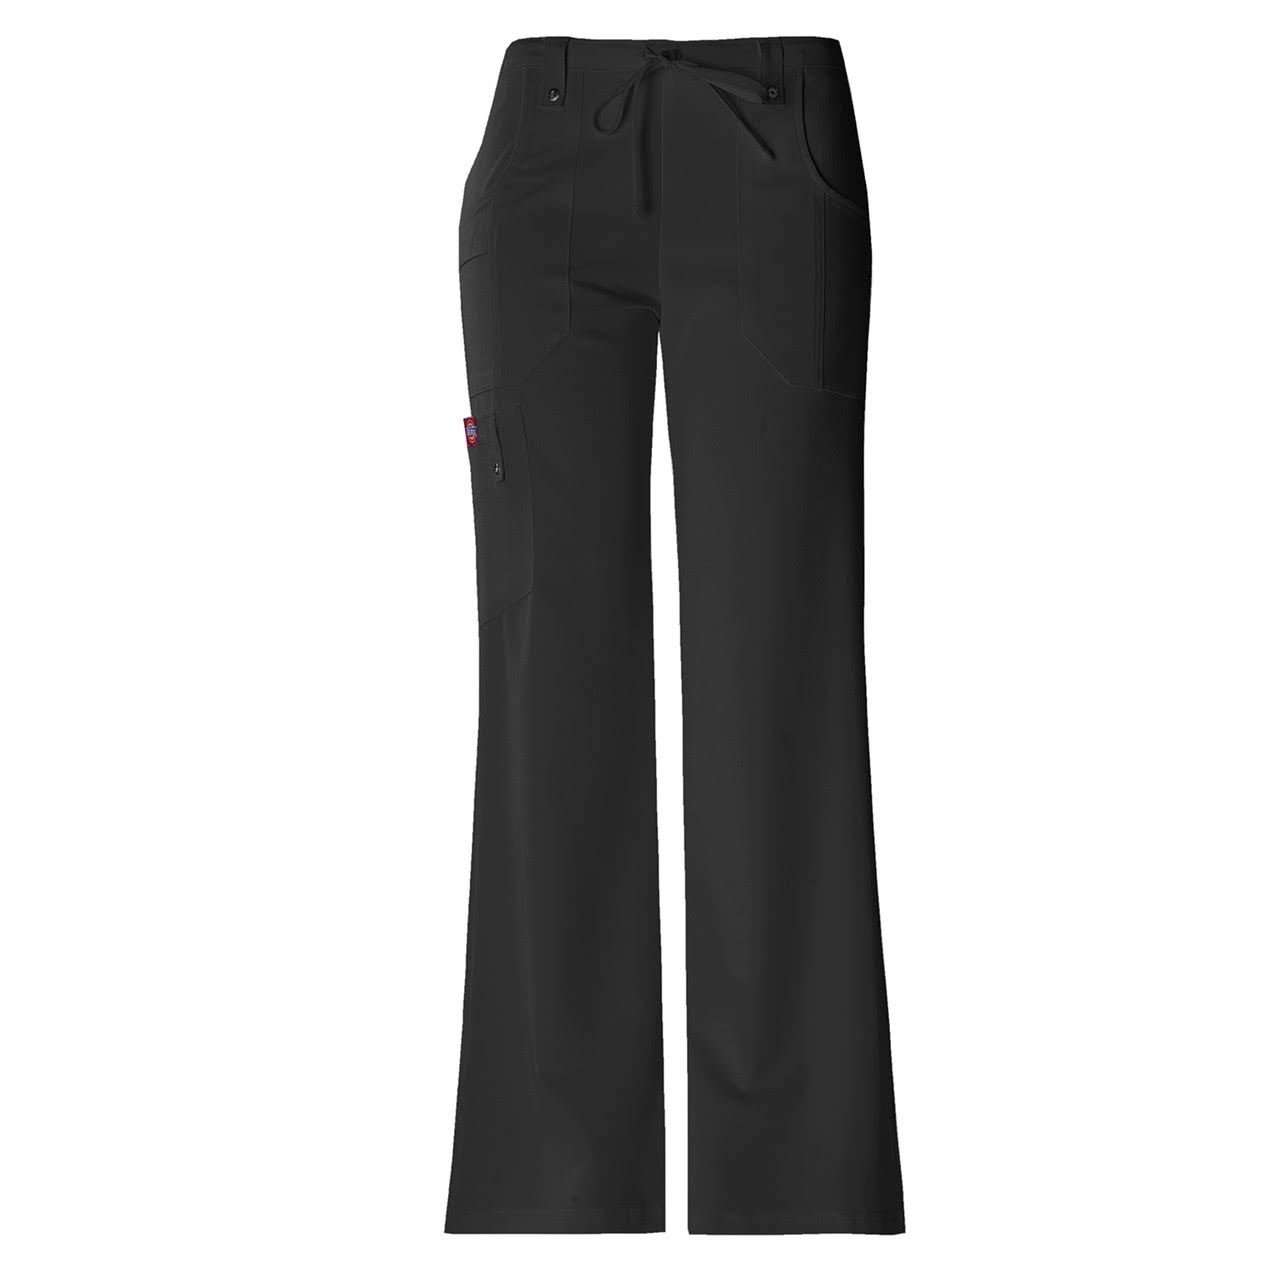 Dickies Women's Xtreme Stretch Tall Drawstring Scrub Pant - 2x - Black